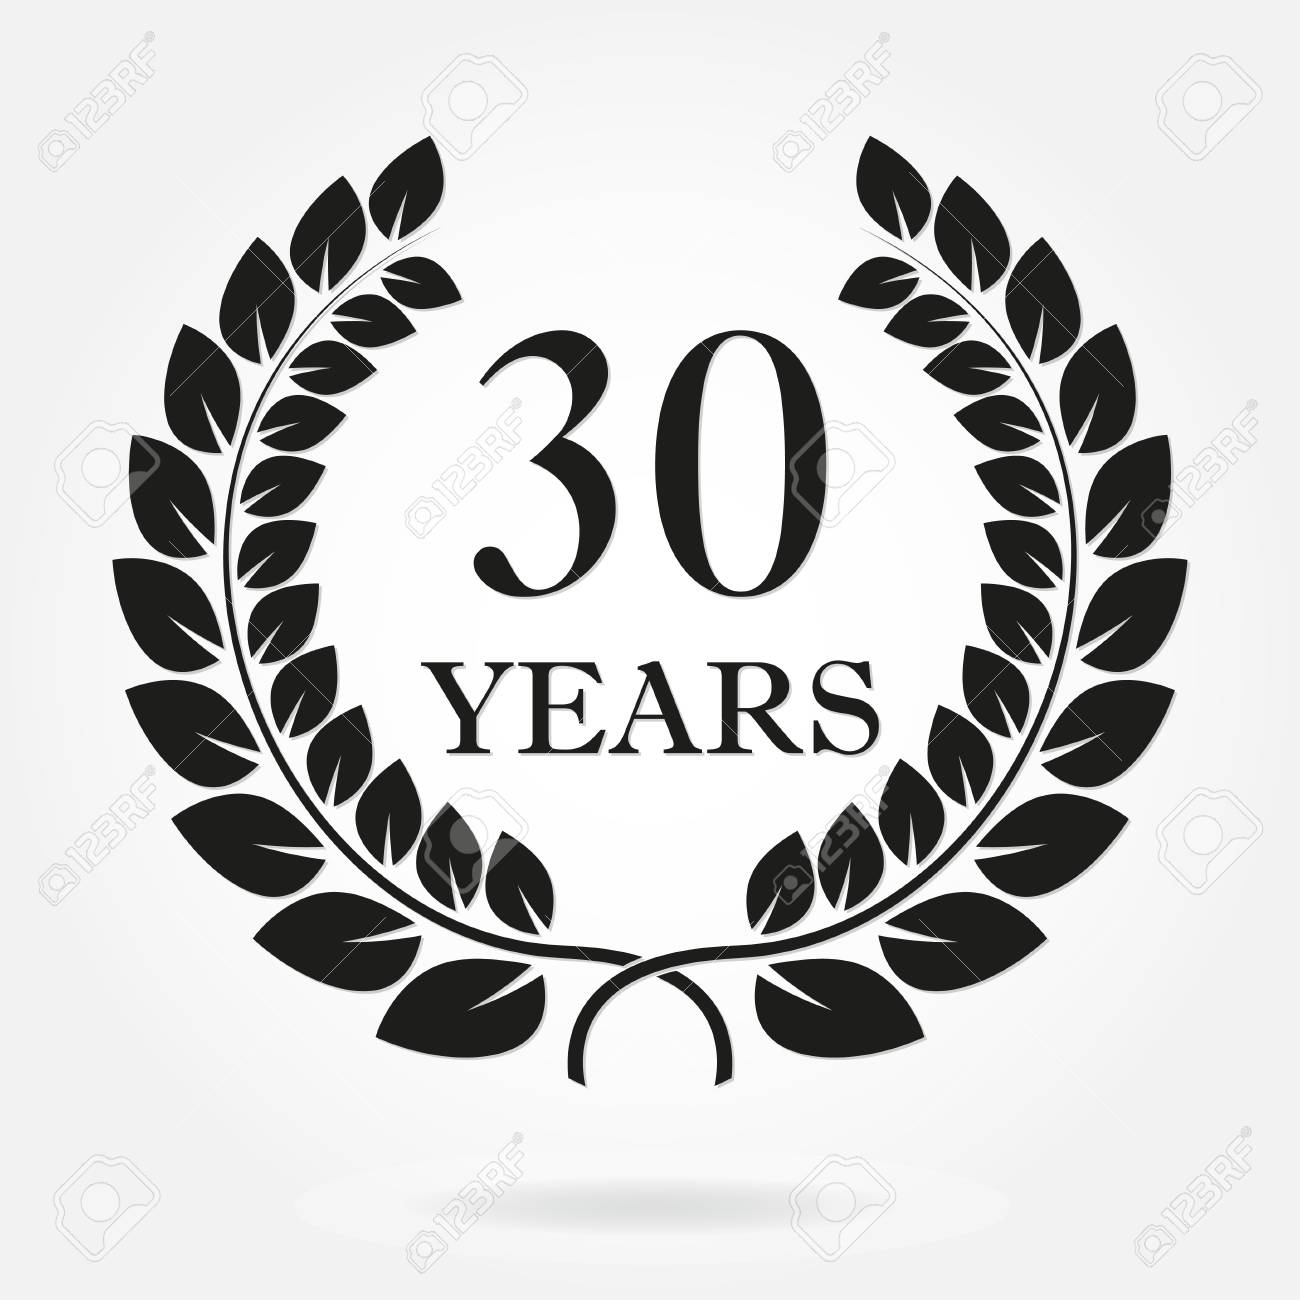 30 years anniversary laurel wreath sign or emblem template for